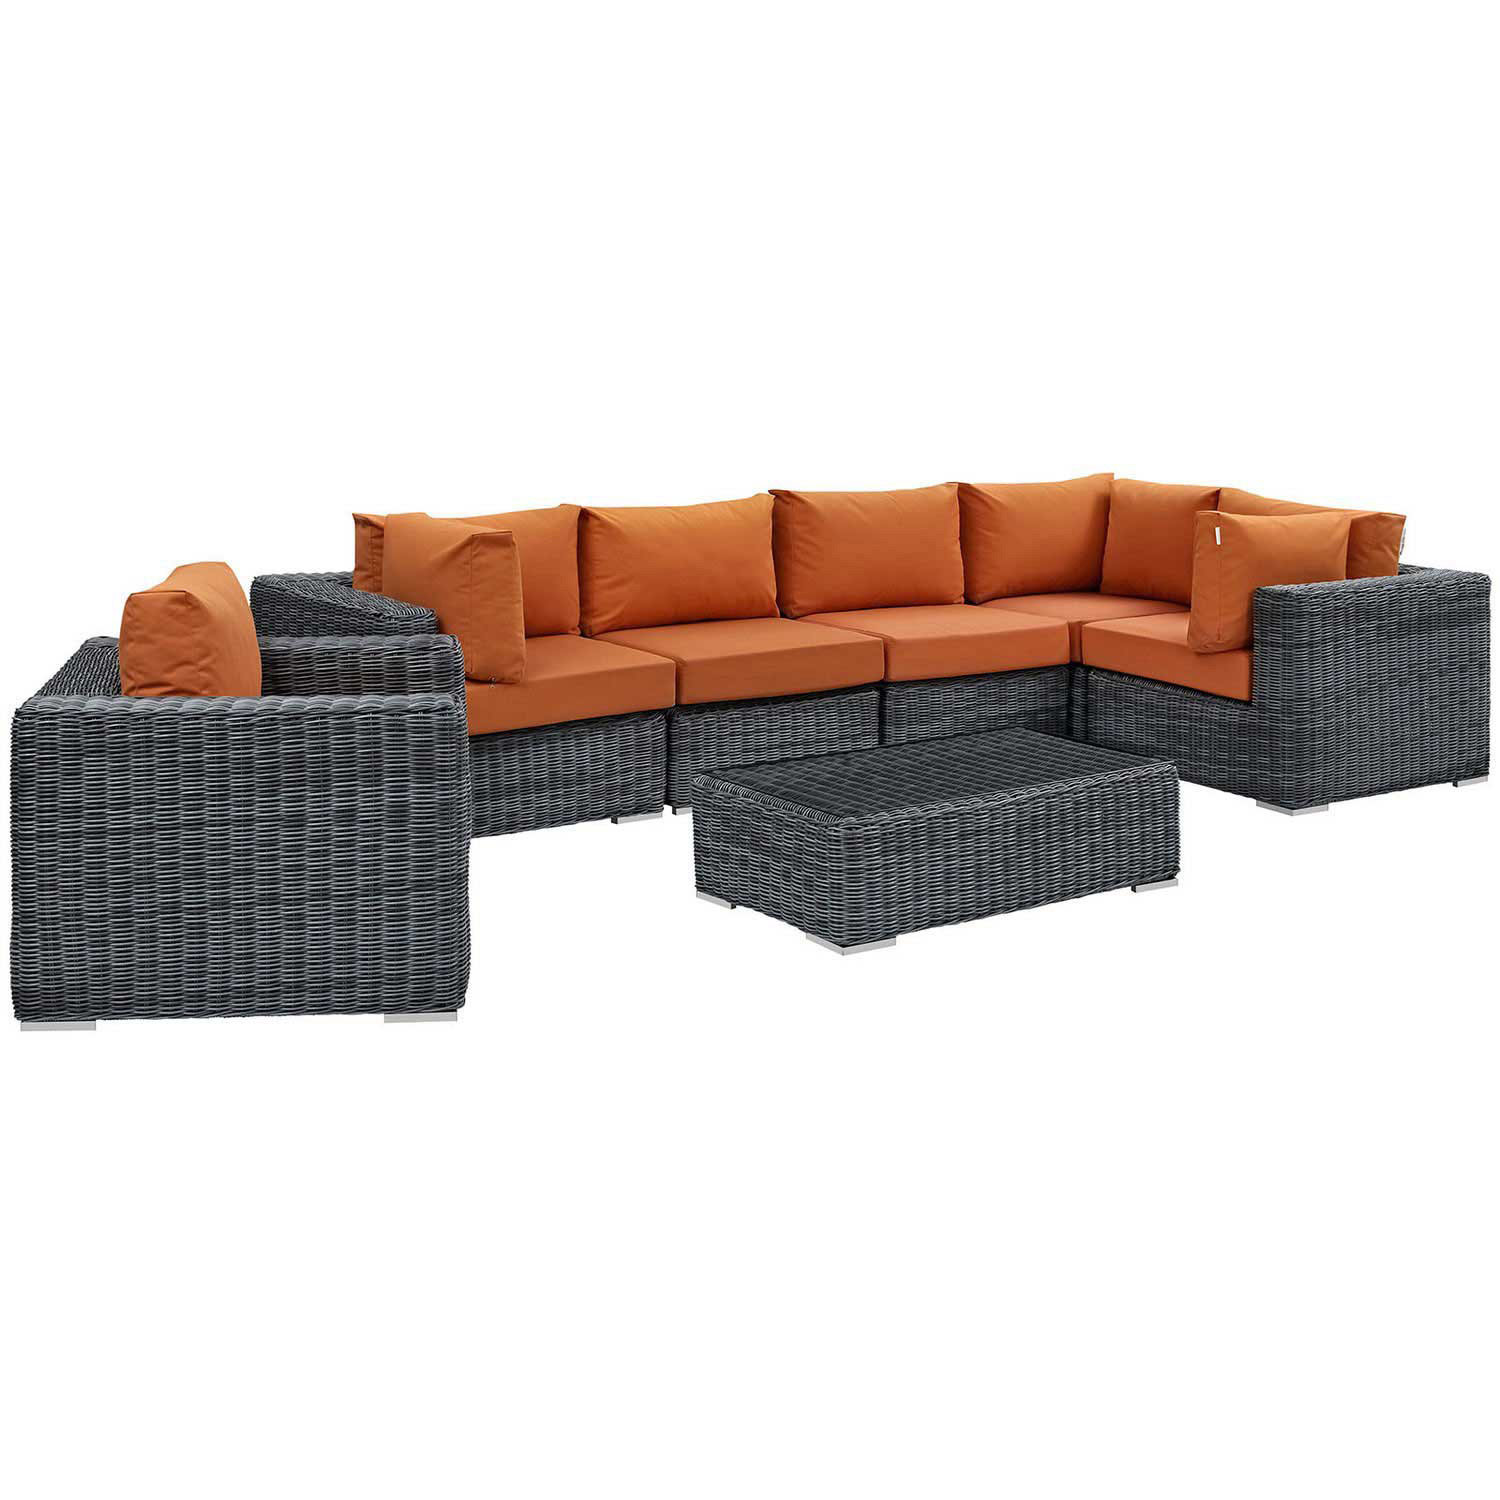 Modway Summon 7 Piece Outdoor Patio Sunbrella Sectional Set - Canvas Tuscan